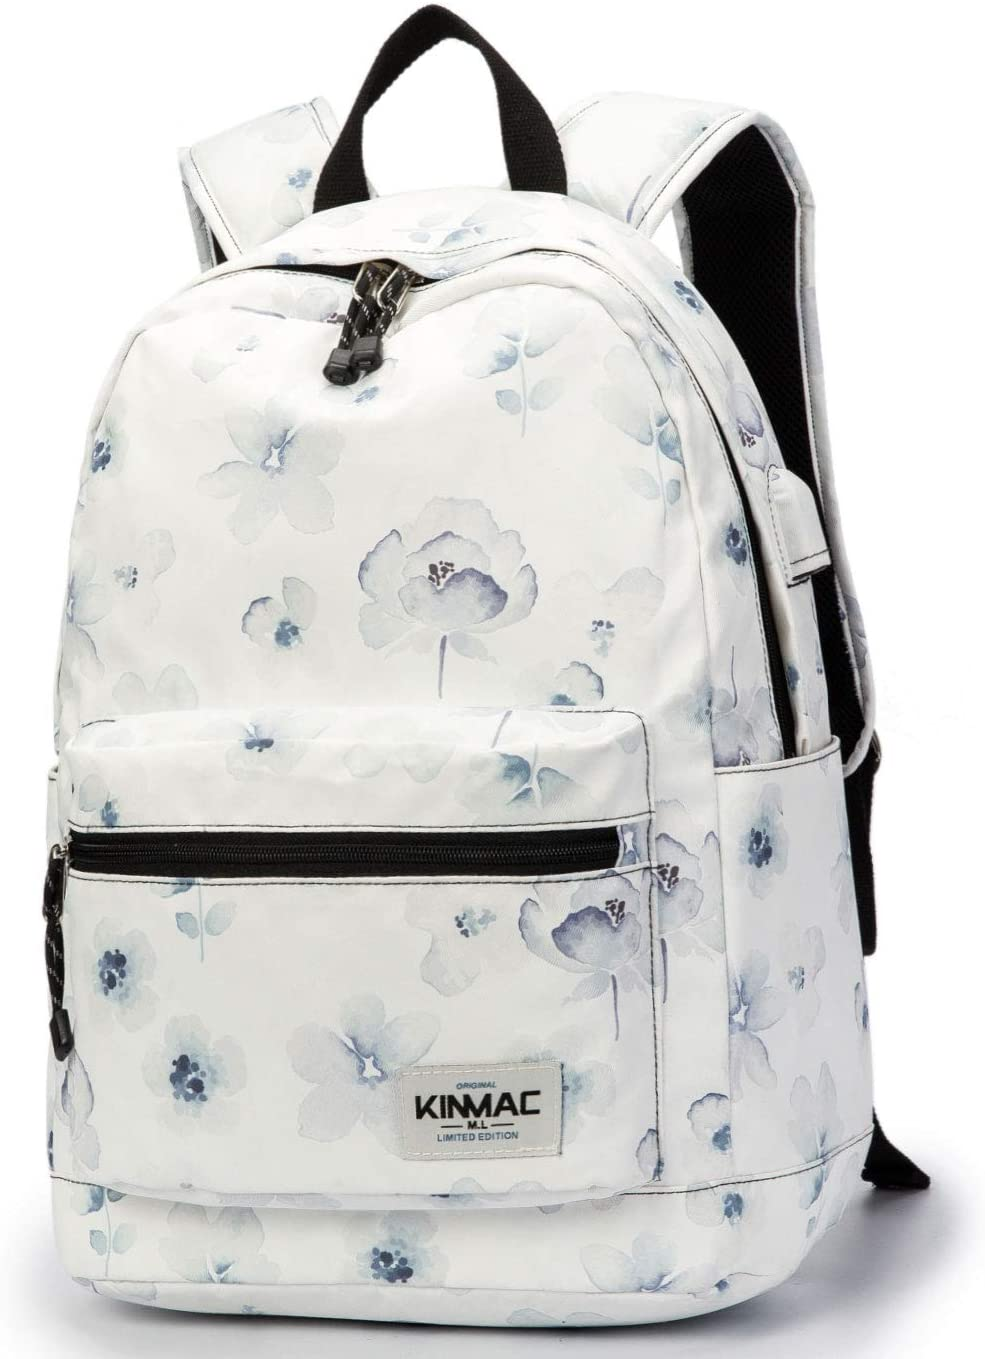 Kinmac Chinese Ink Flower Pattern 15 inch Waterproof Laptop Travel Outdoor Backpack with USB Charging Port for 13 inch 14 inch and 15.6 inch Laptop